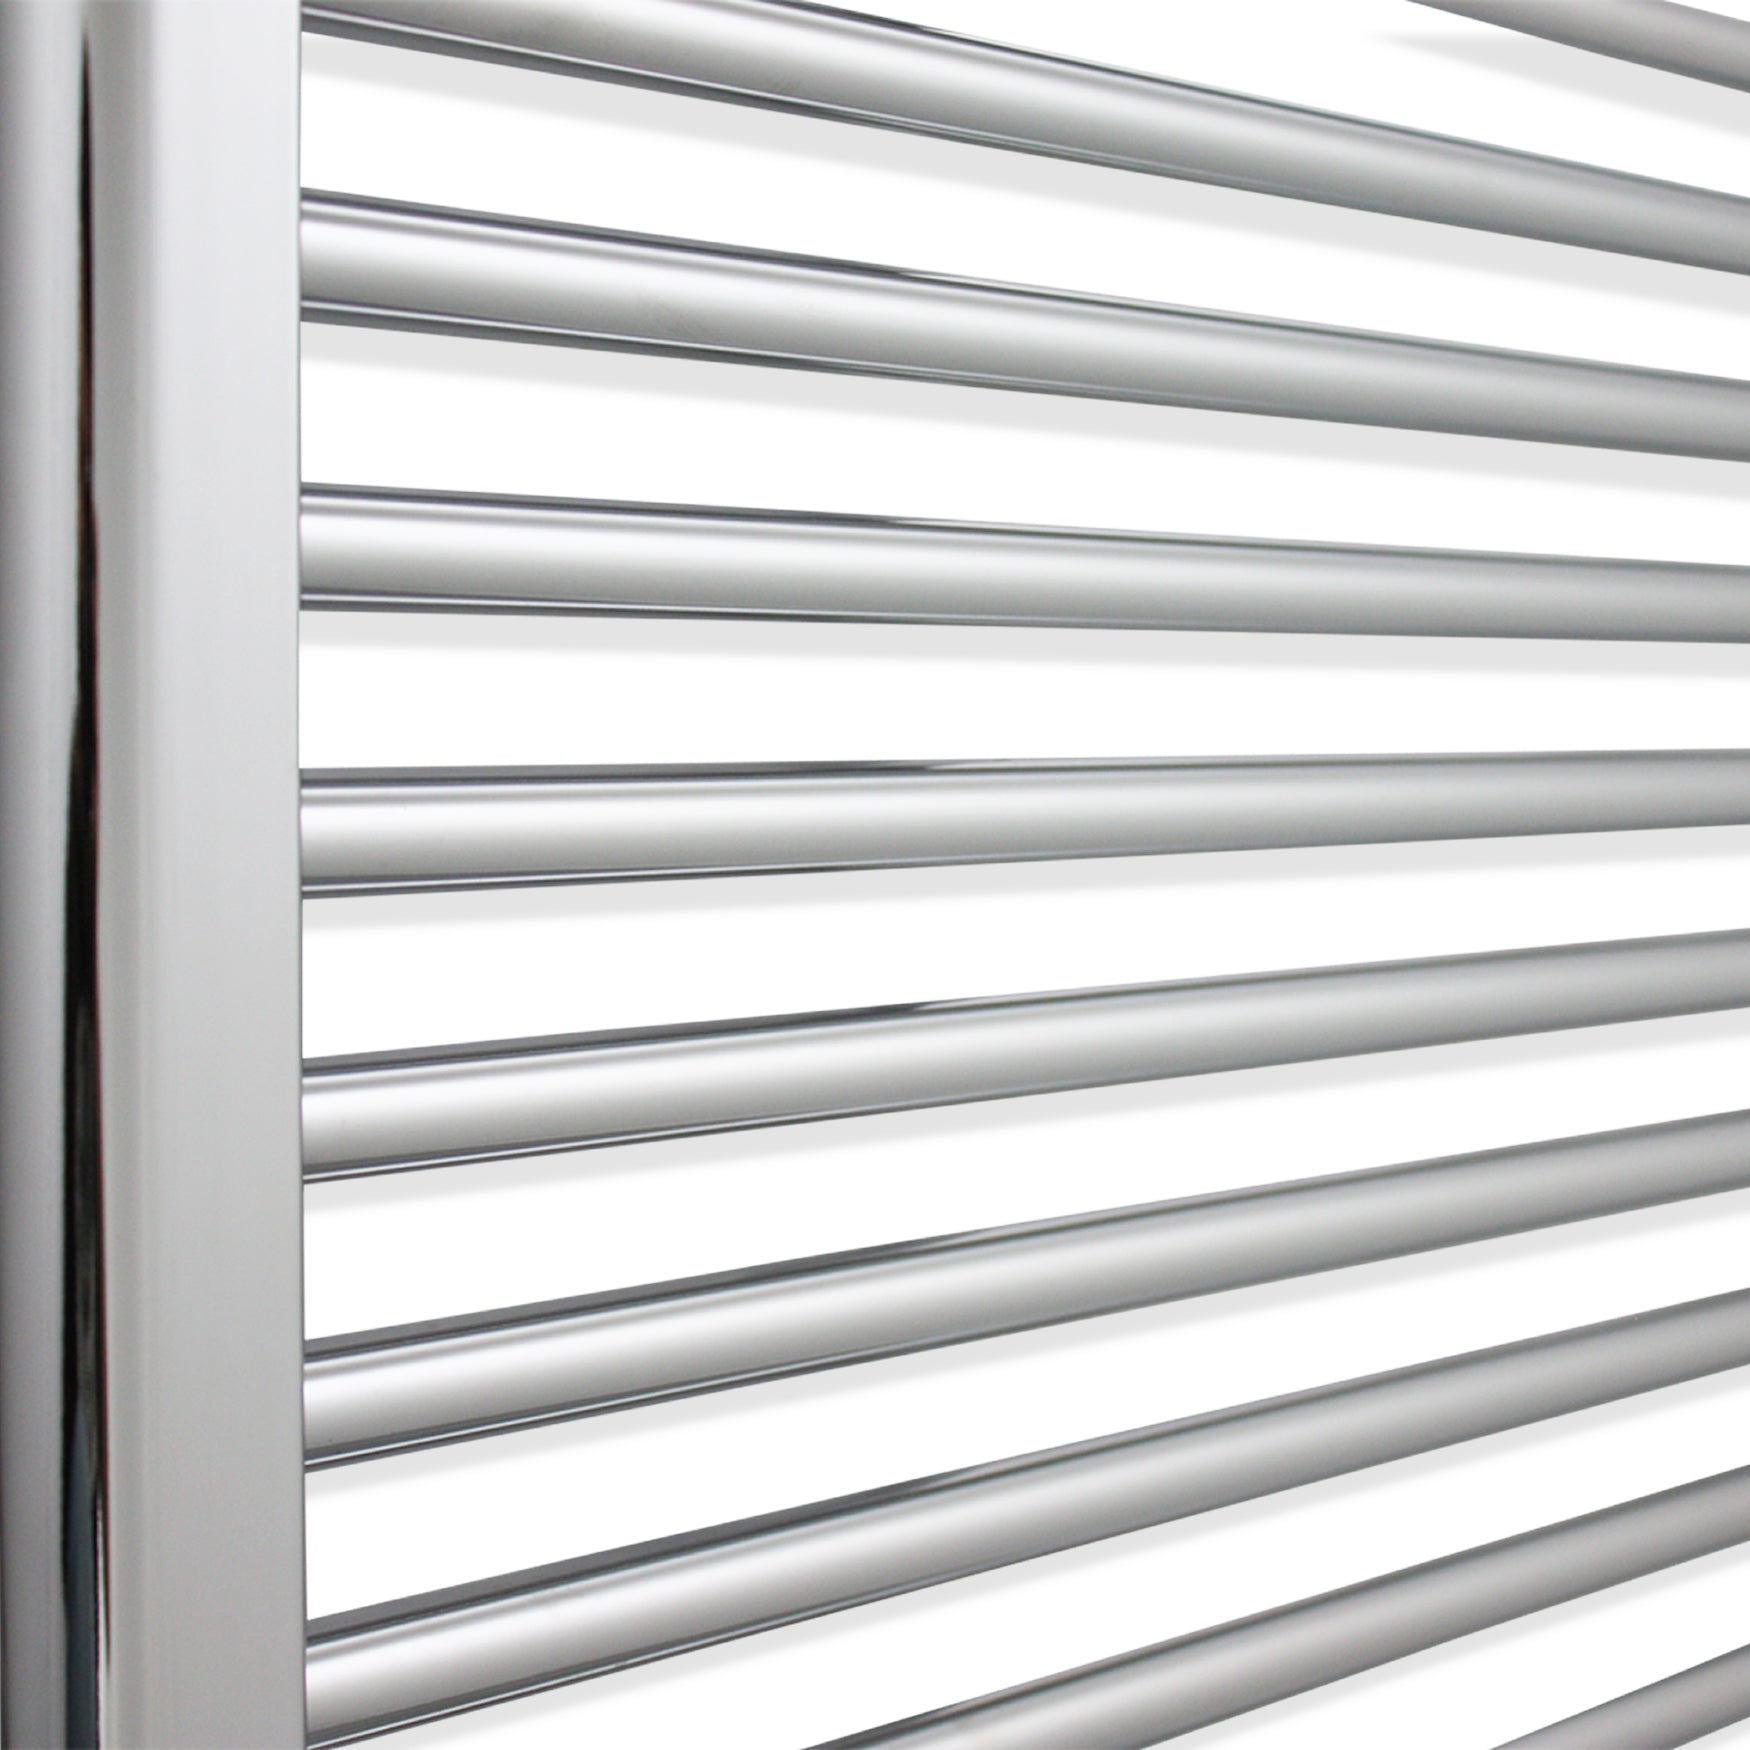 900mm Wide 1000mm High Flat Chrome Heated Towel Rail Radiator HTR